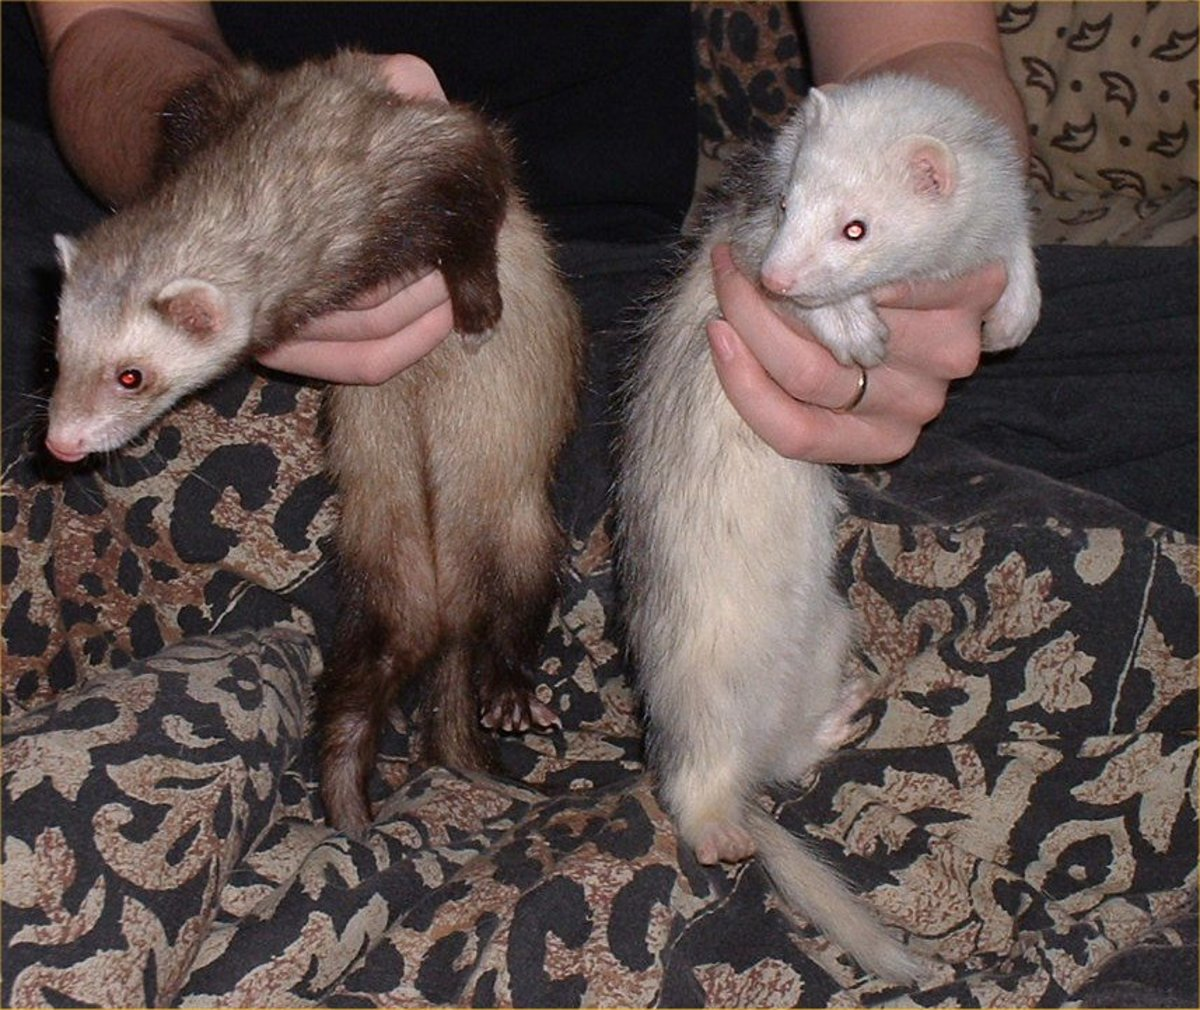 Having just one ferret may only last a few weeks, for some reason they are highly addictive so do not get one unless you may want another...and another....and another...